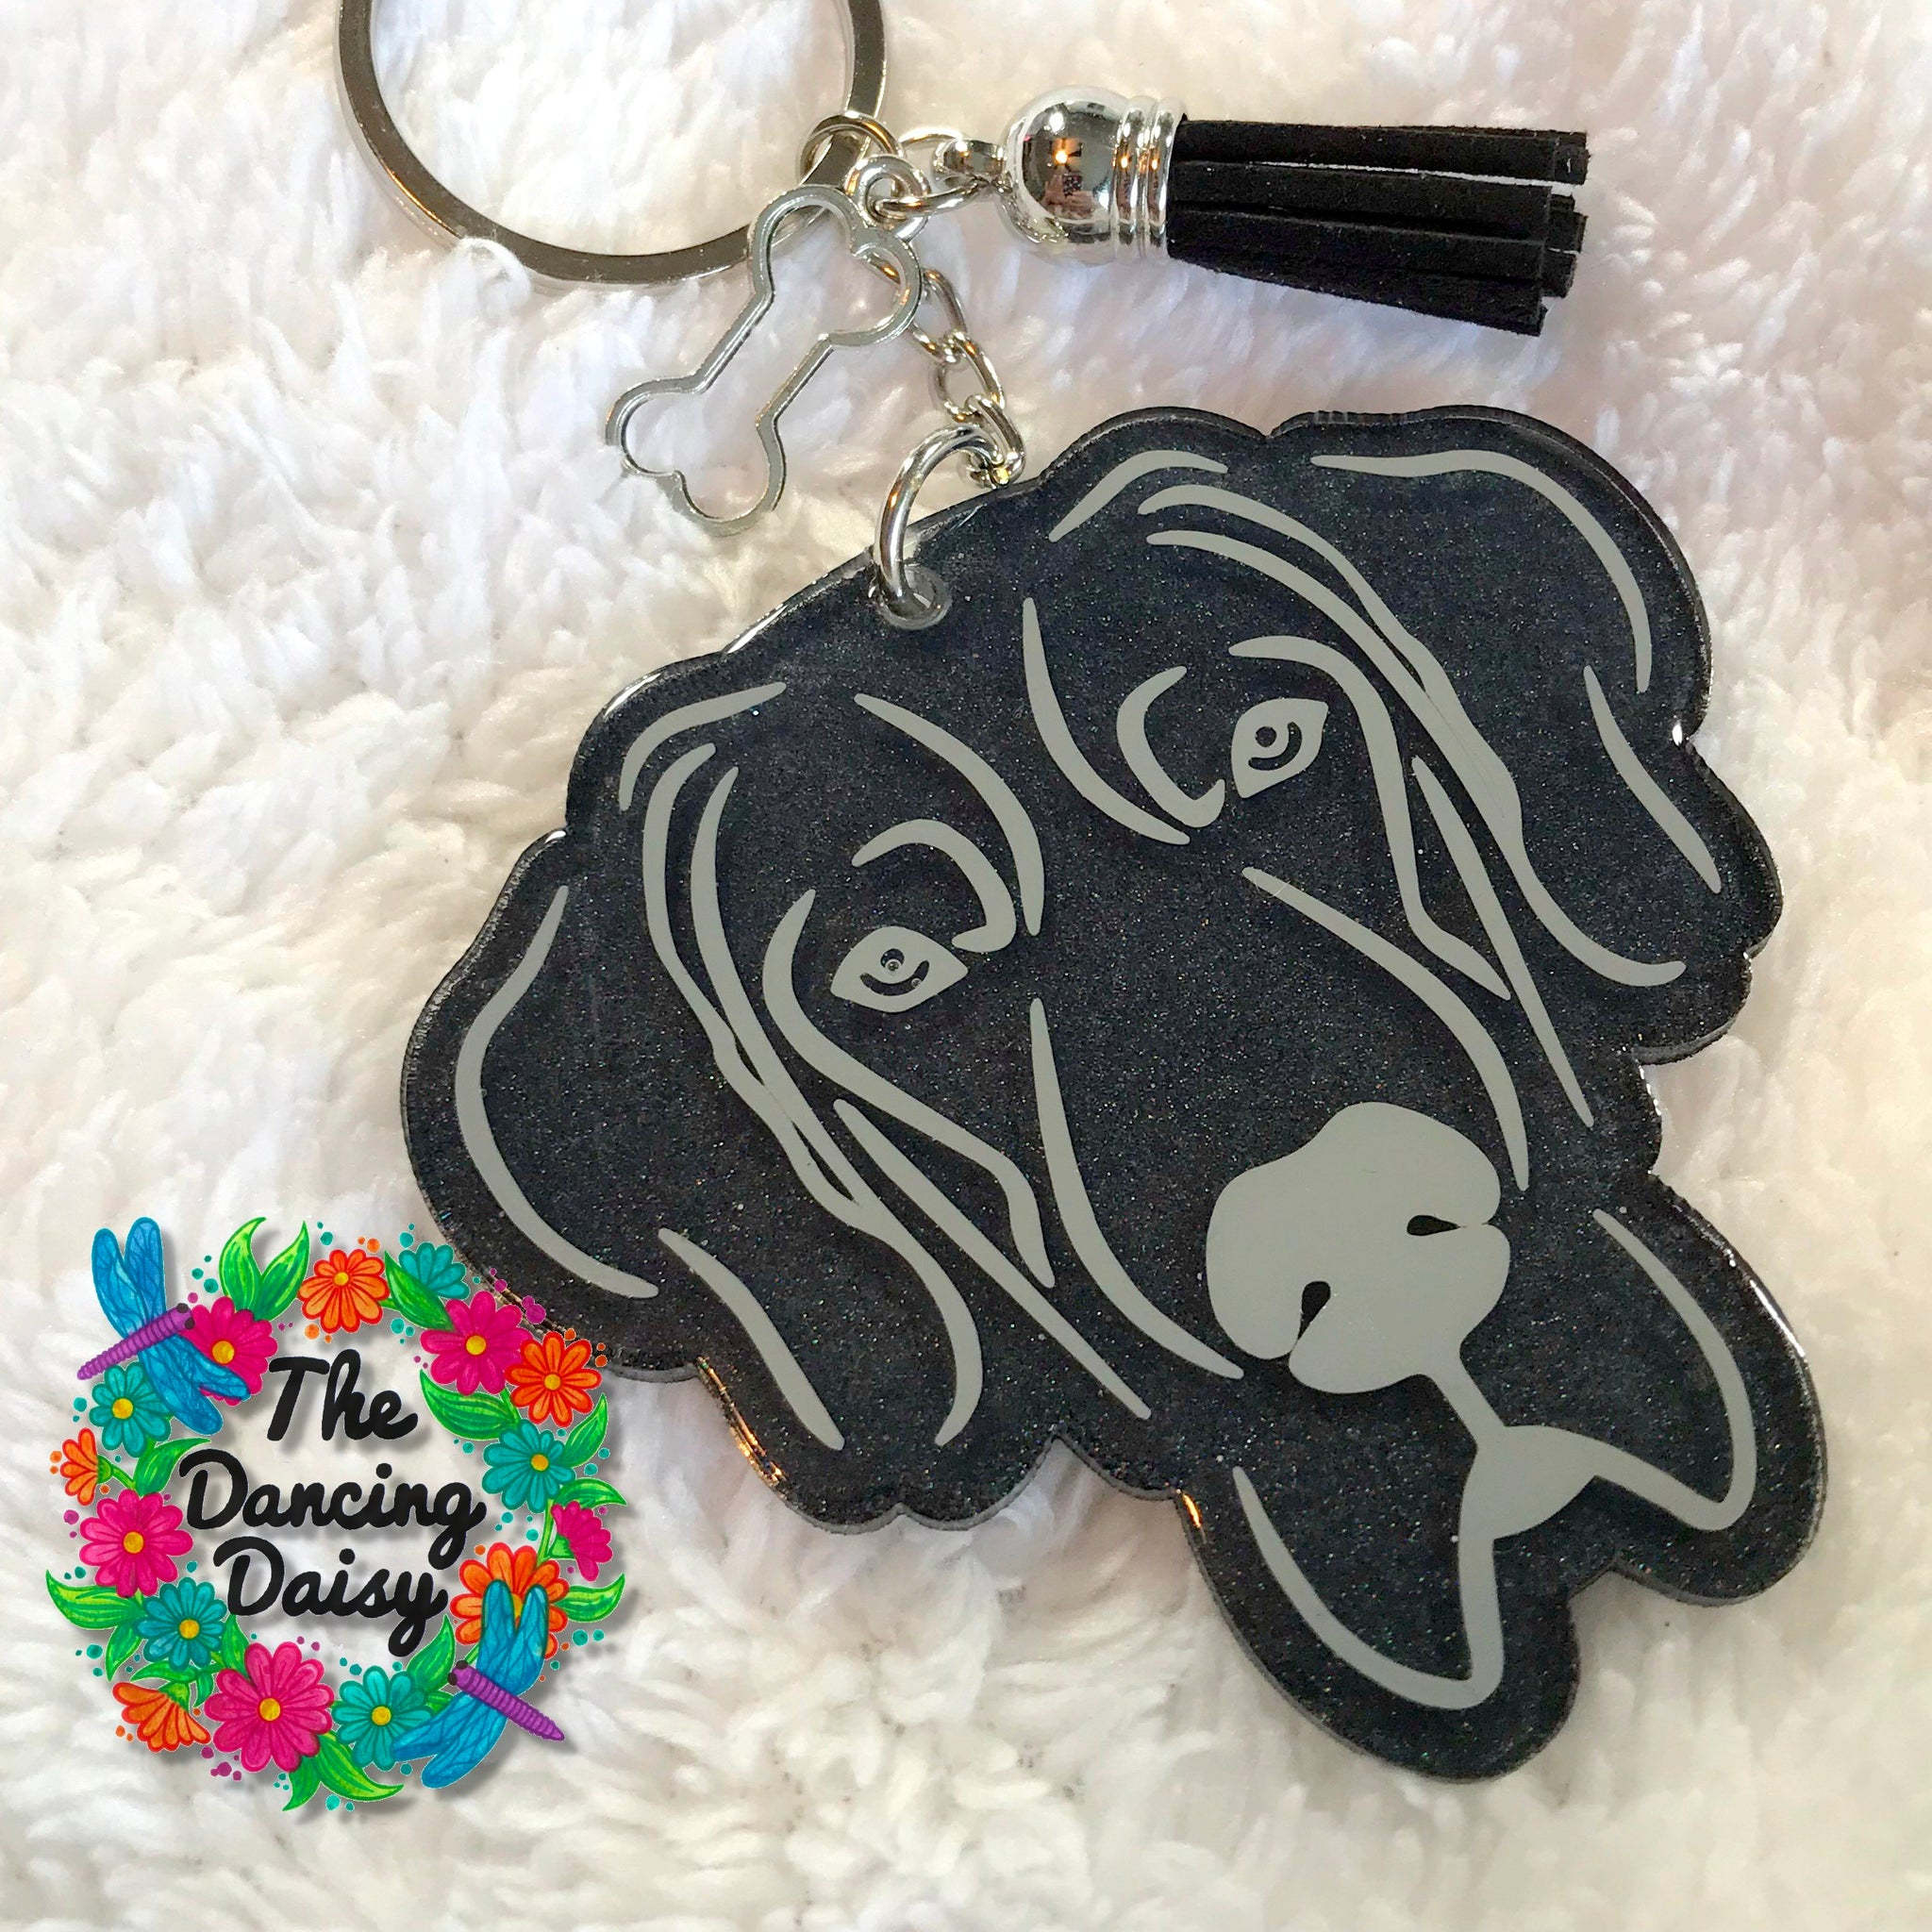 Uncropped Great Dane dog keychain